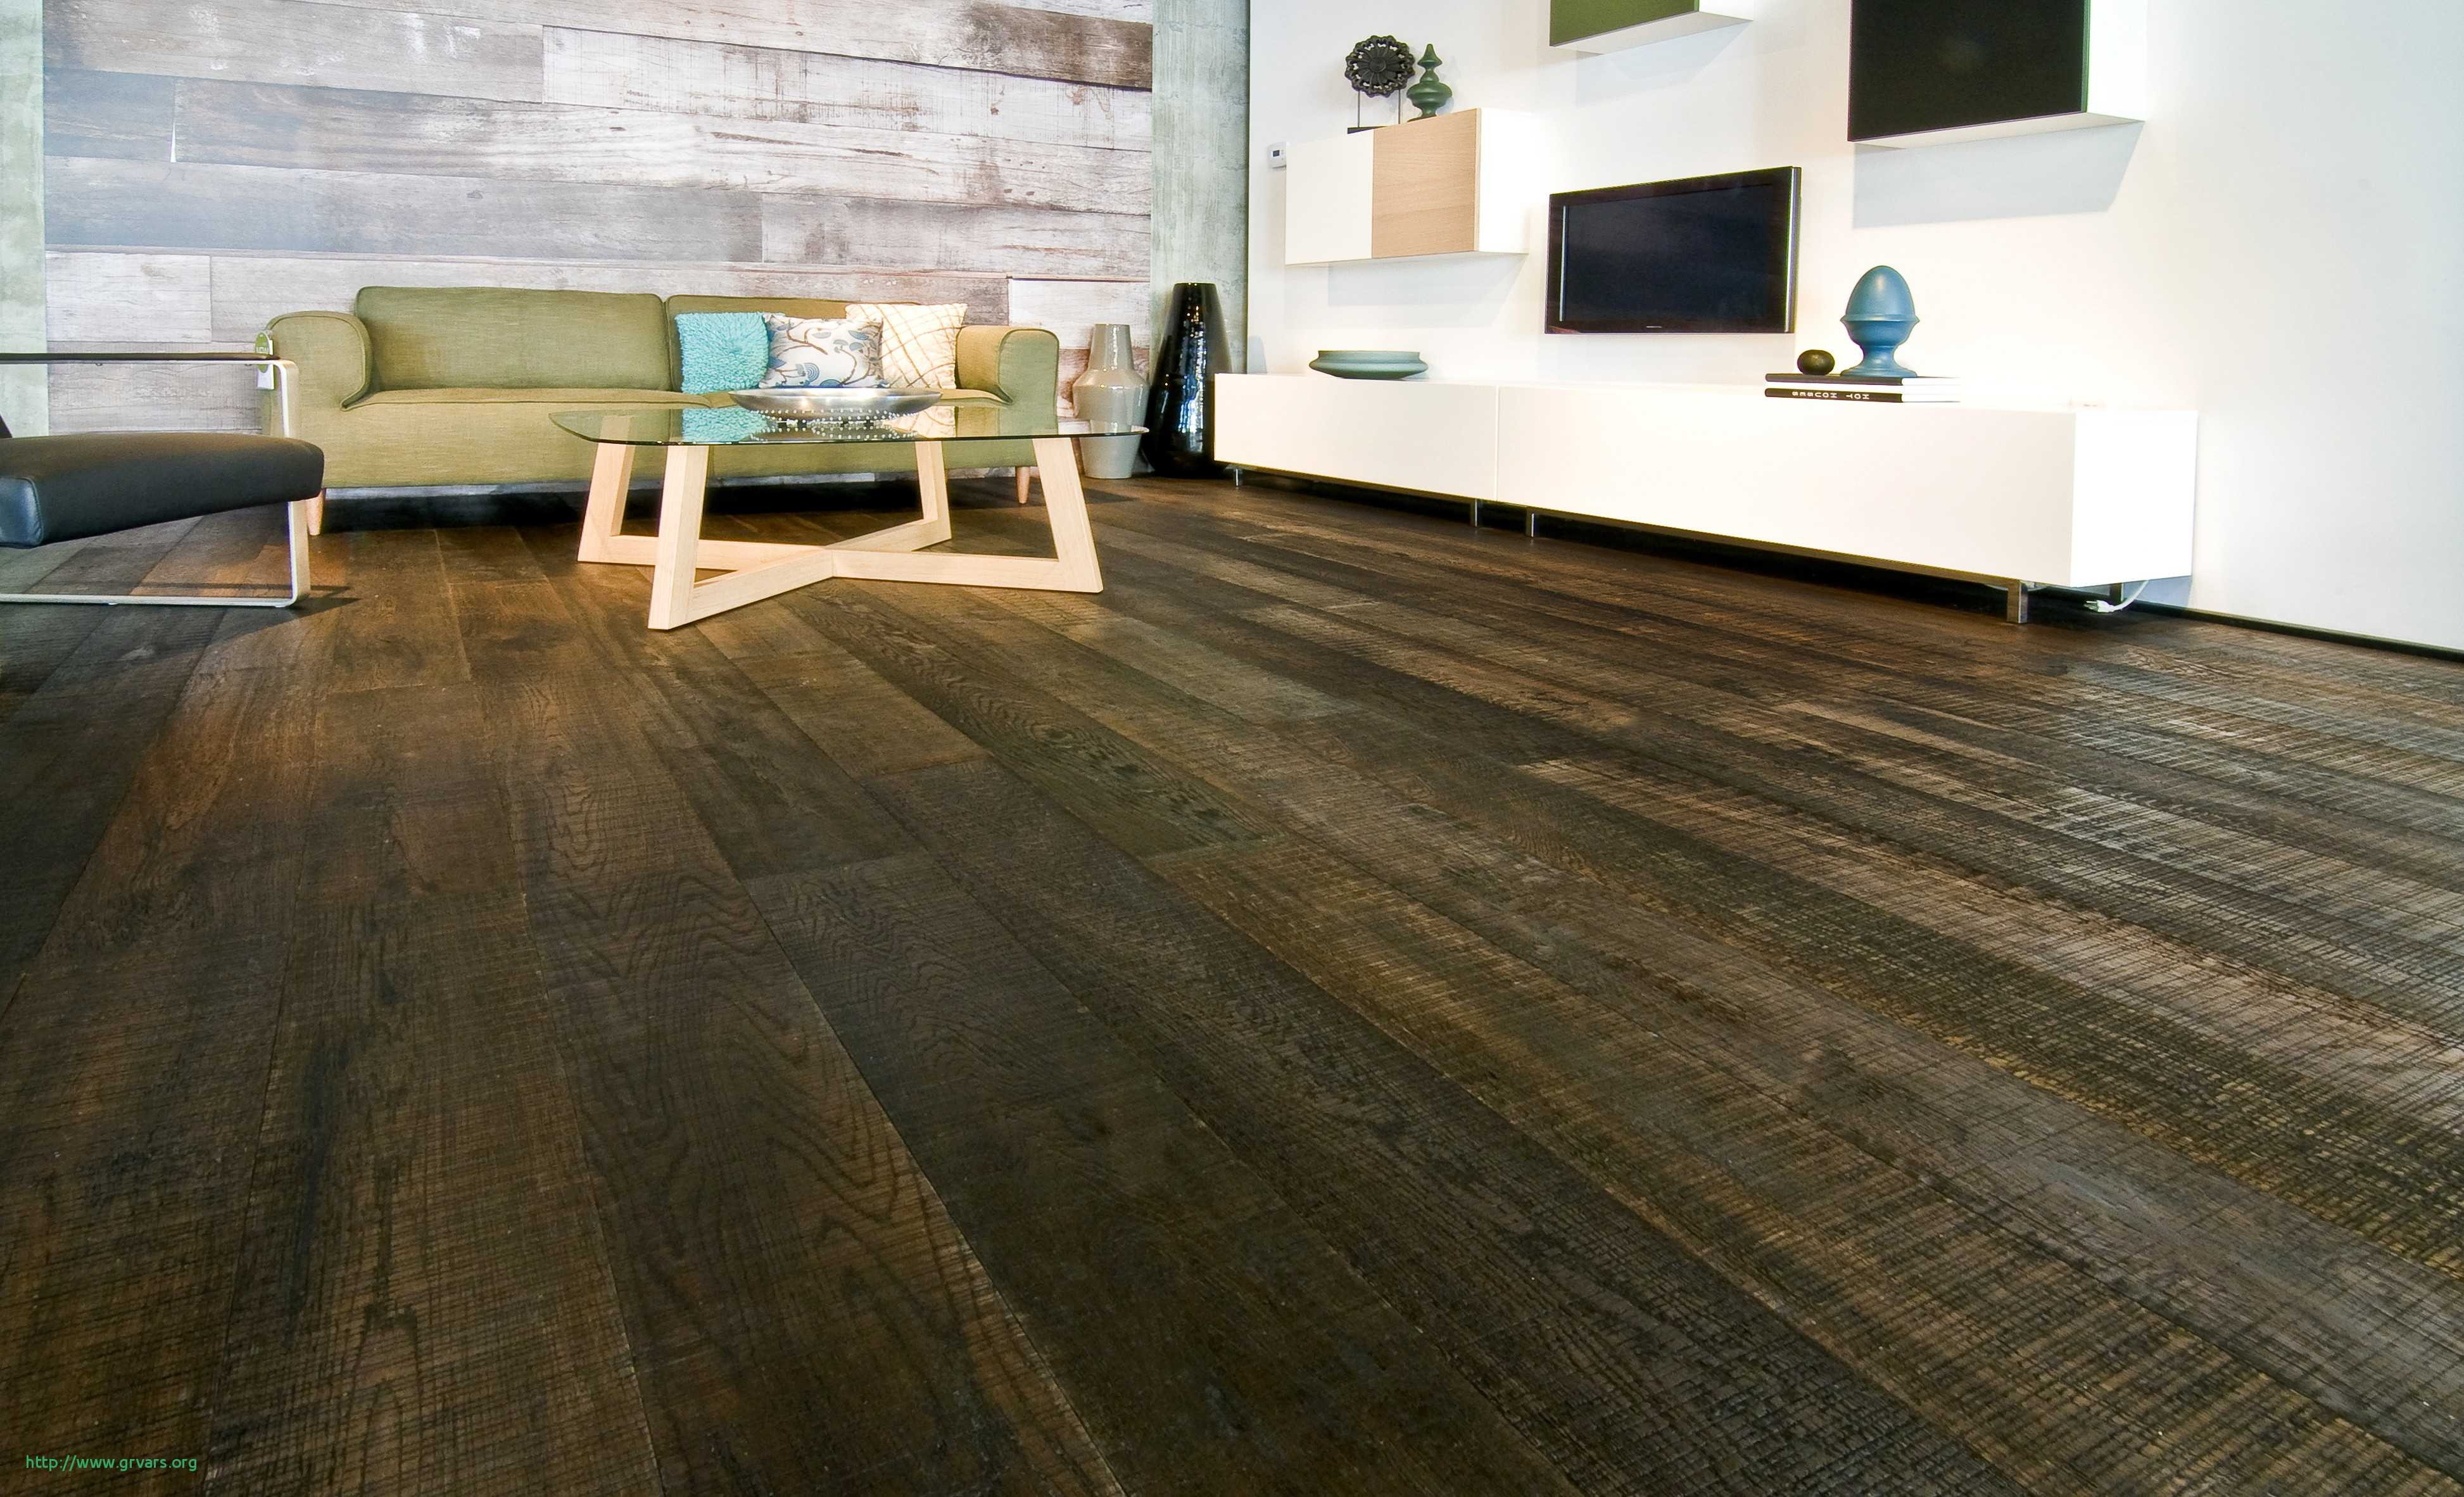 5 16 engineered hardwood flooring of 21 beau cheapest hardwood flooring in toronto ideas blog in cheapest hardwood flooring in toronto charmant engaging discount hardwood flooring 5 where to buy inspirational 0d